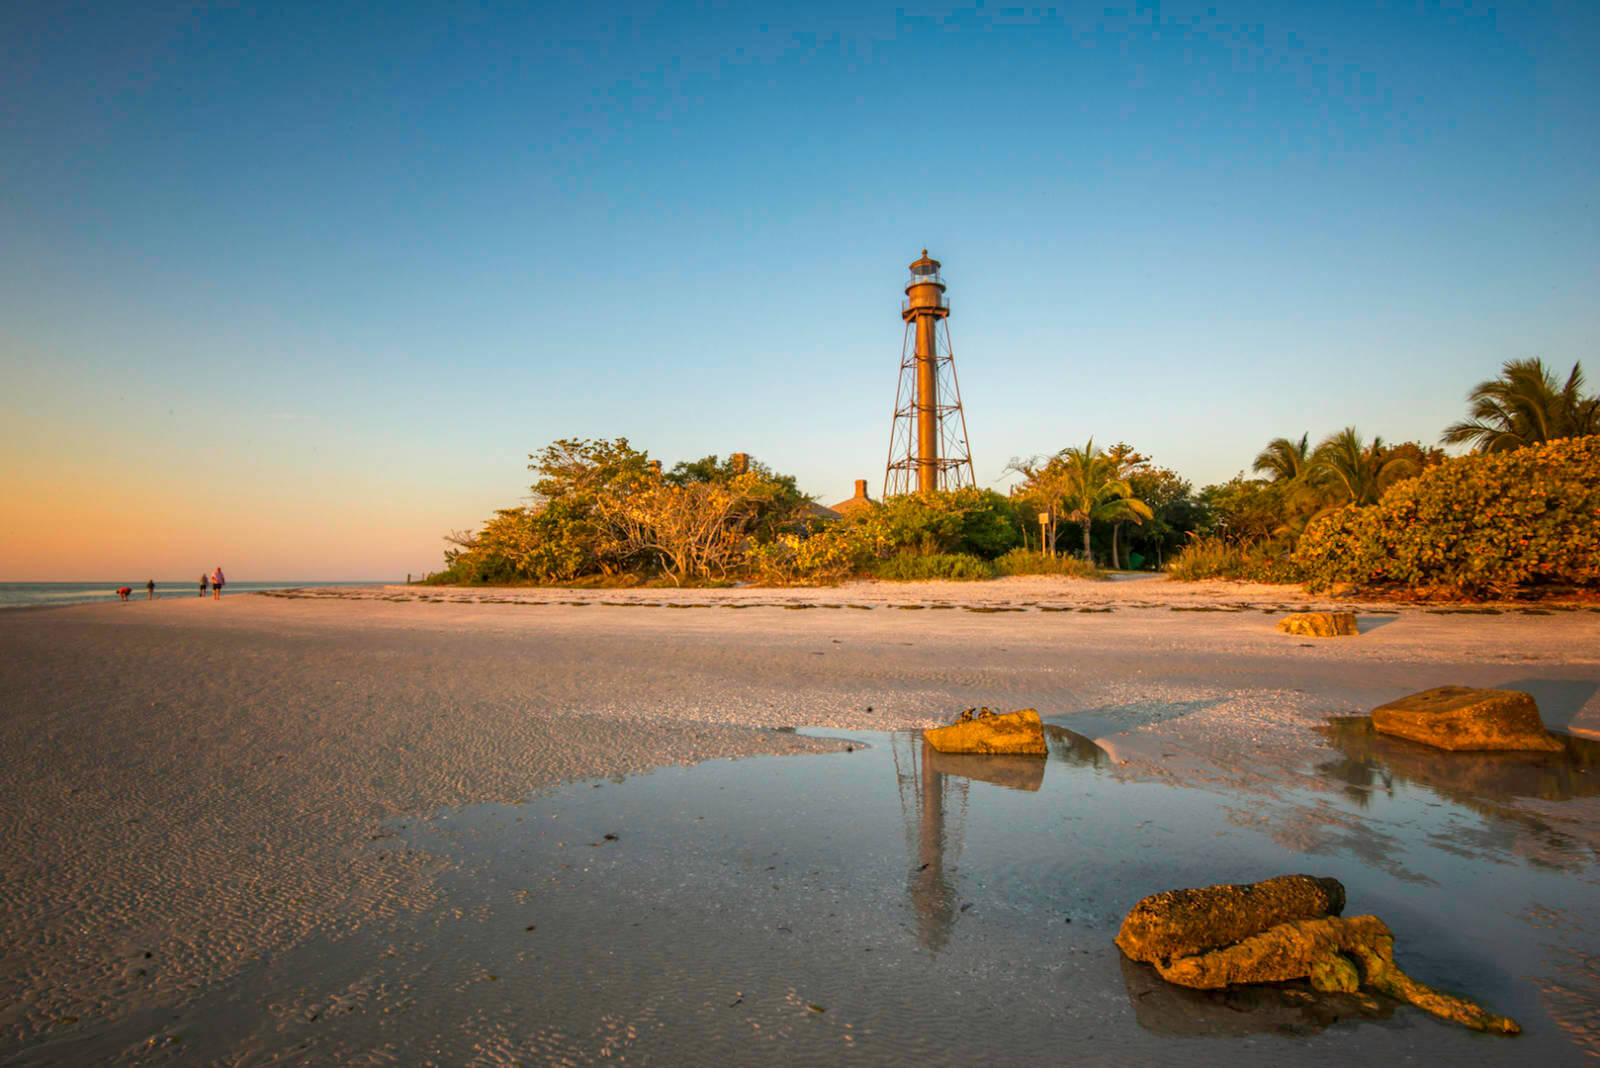 The Sanibel Lighthouse is an iconic landmark at the east end of Sanibel Island. You can't climb the 130-year-old lighthouse, but the grounds are always open for walks along the boardwalk and nature trails. Photo by Jennifer Brinkman. Must Do Visitor Guides, MustDo.com